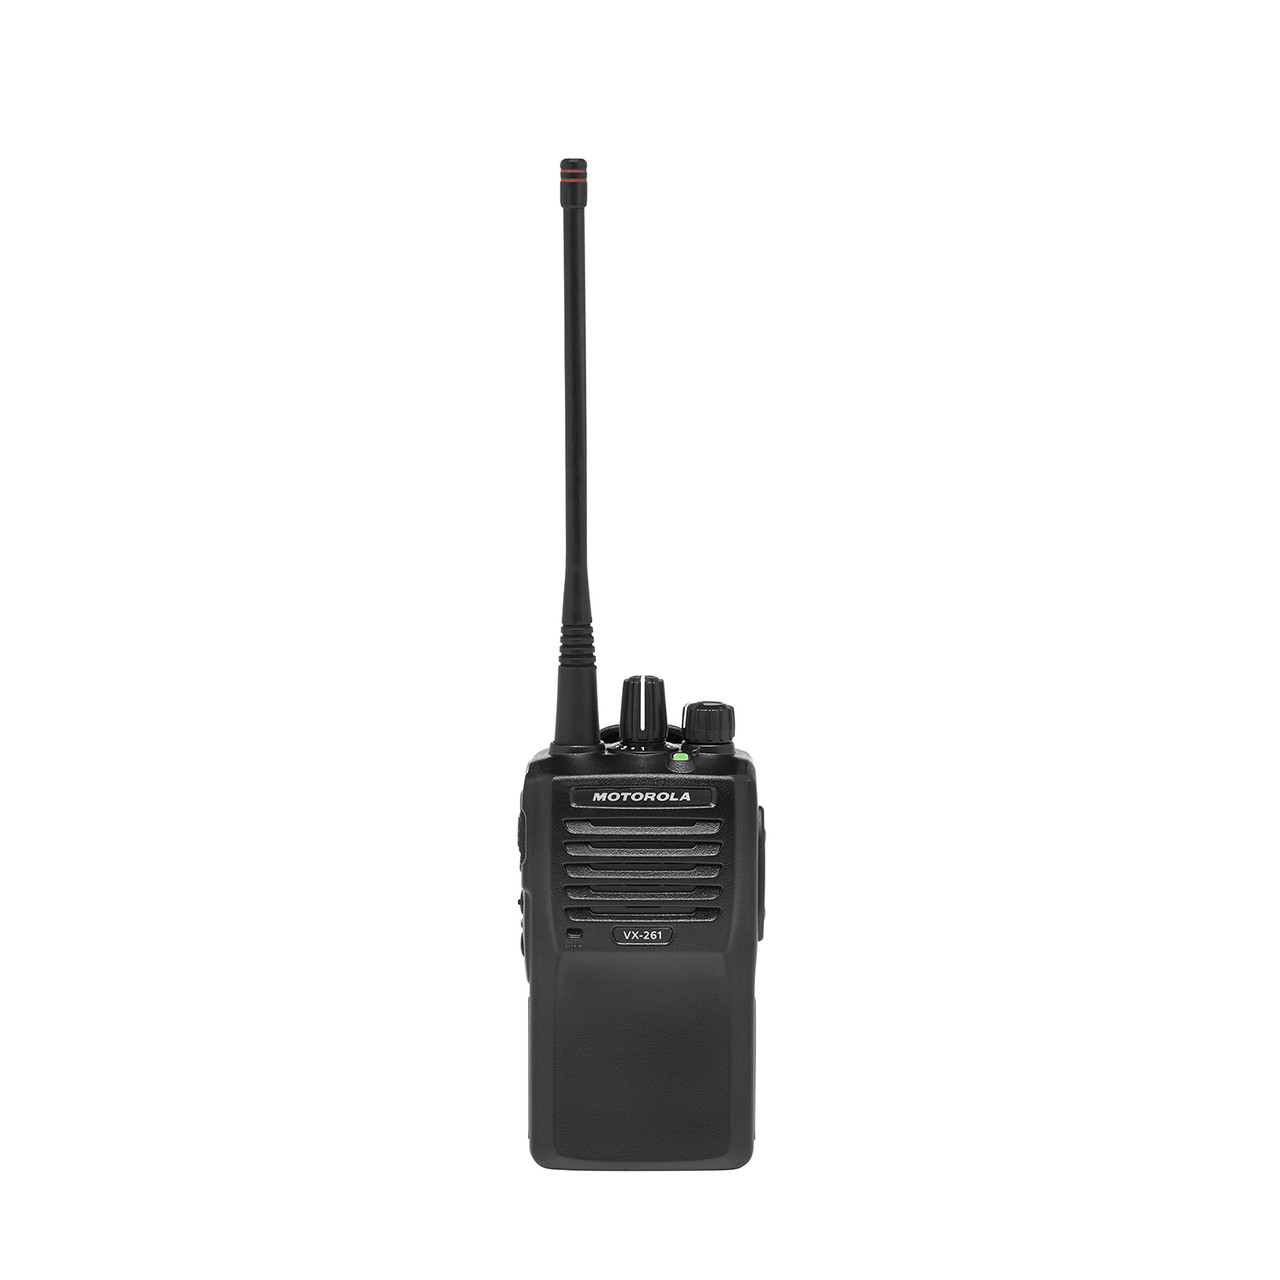 Motorola VX-261 5 Watt UHF or VHF Two Way Radio